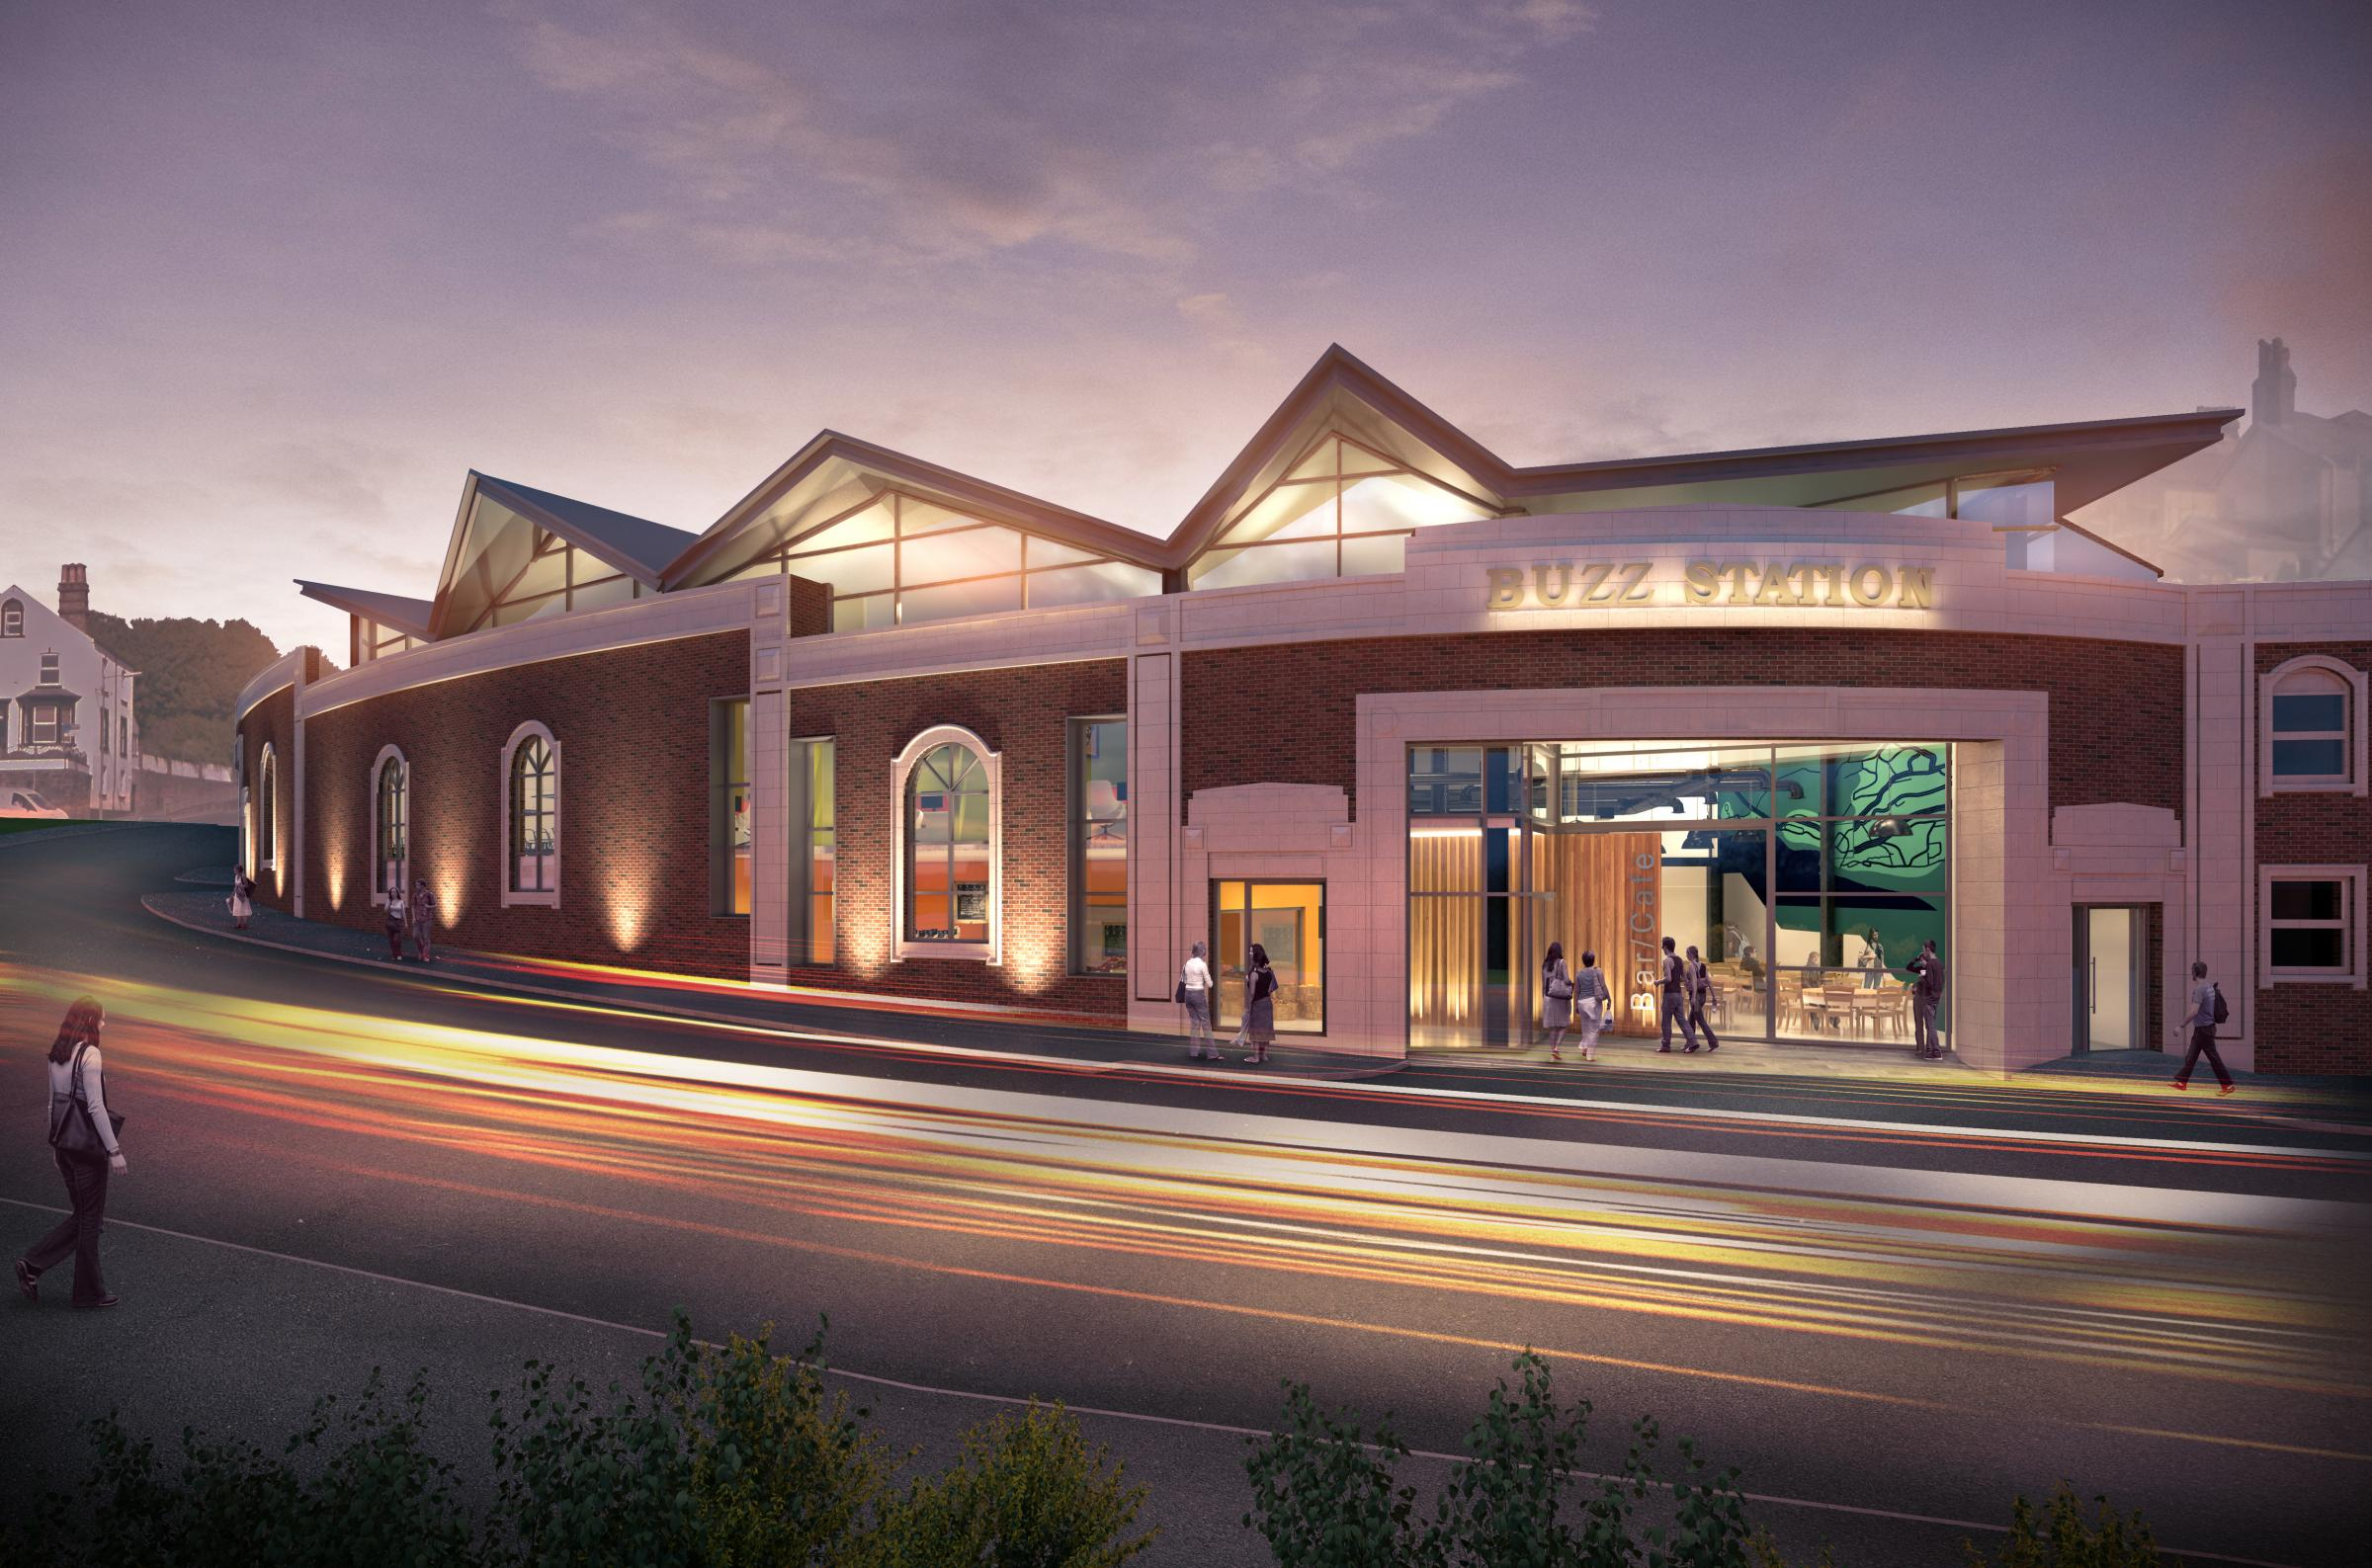 Artist's impression of the Buzz Station, part of the North Shore project, Whitehaven